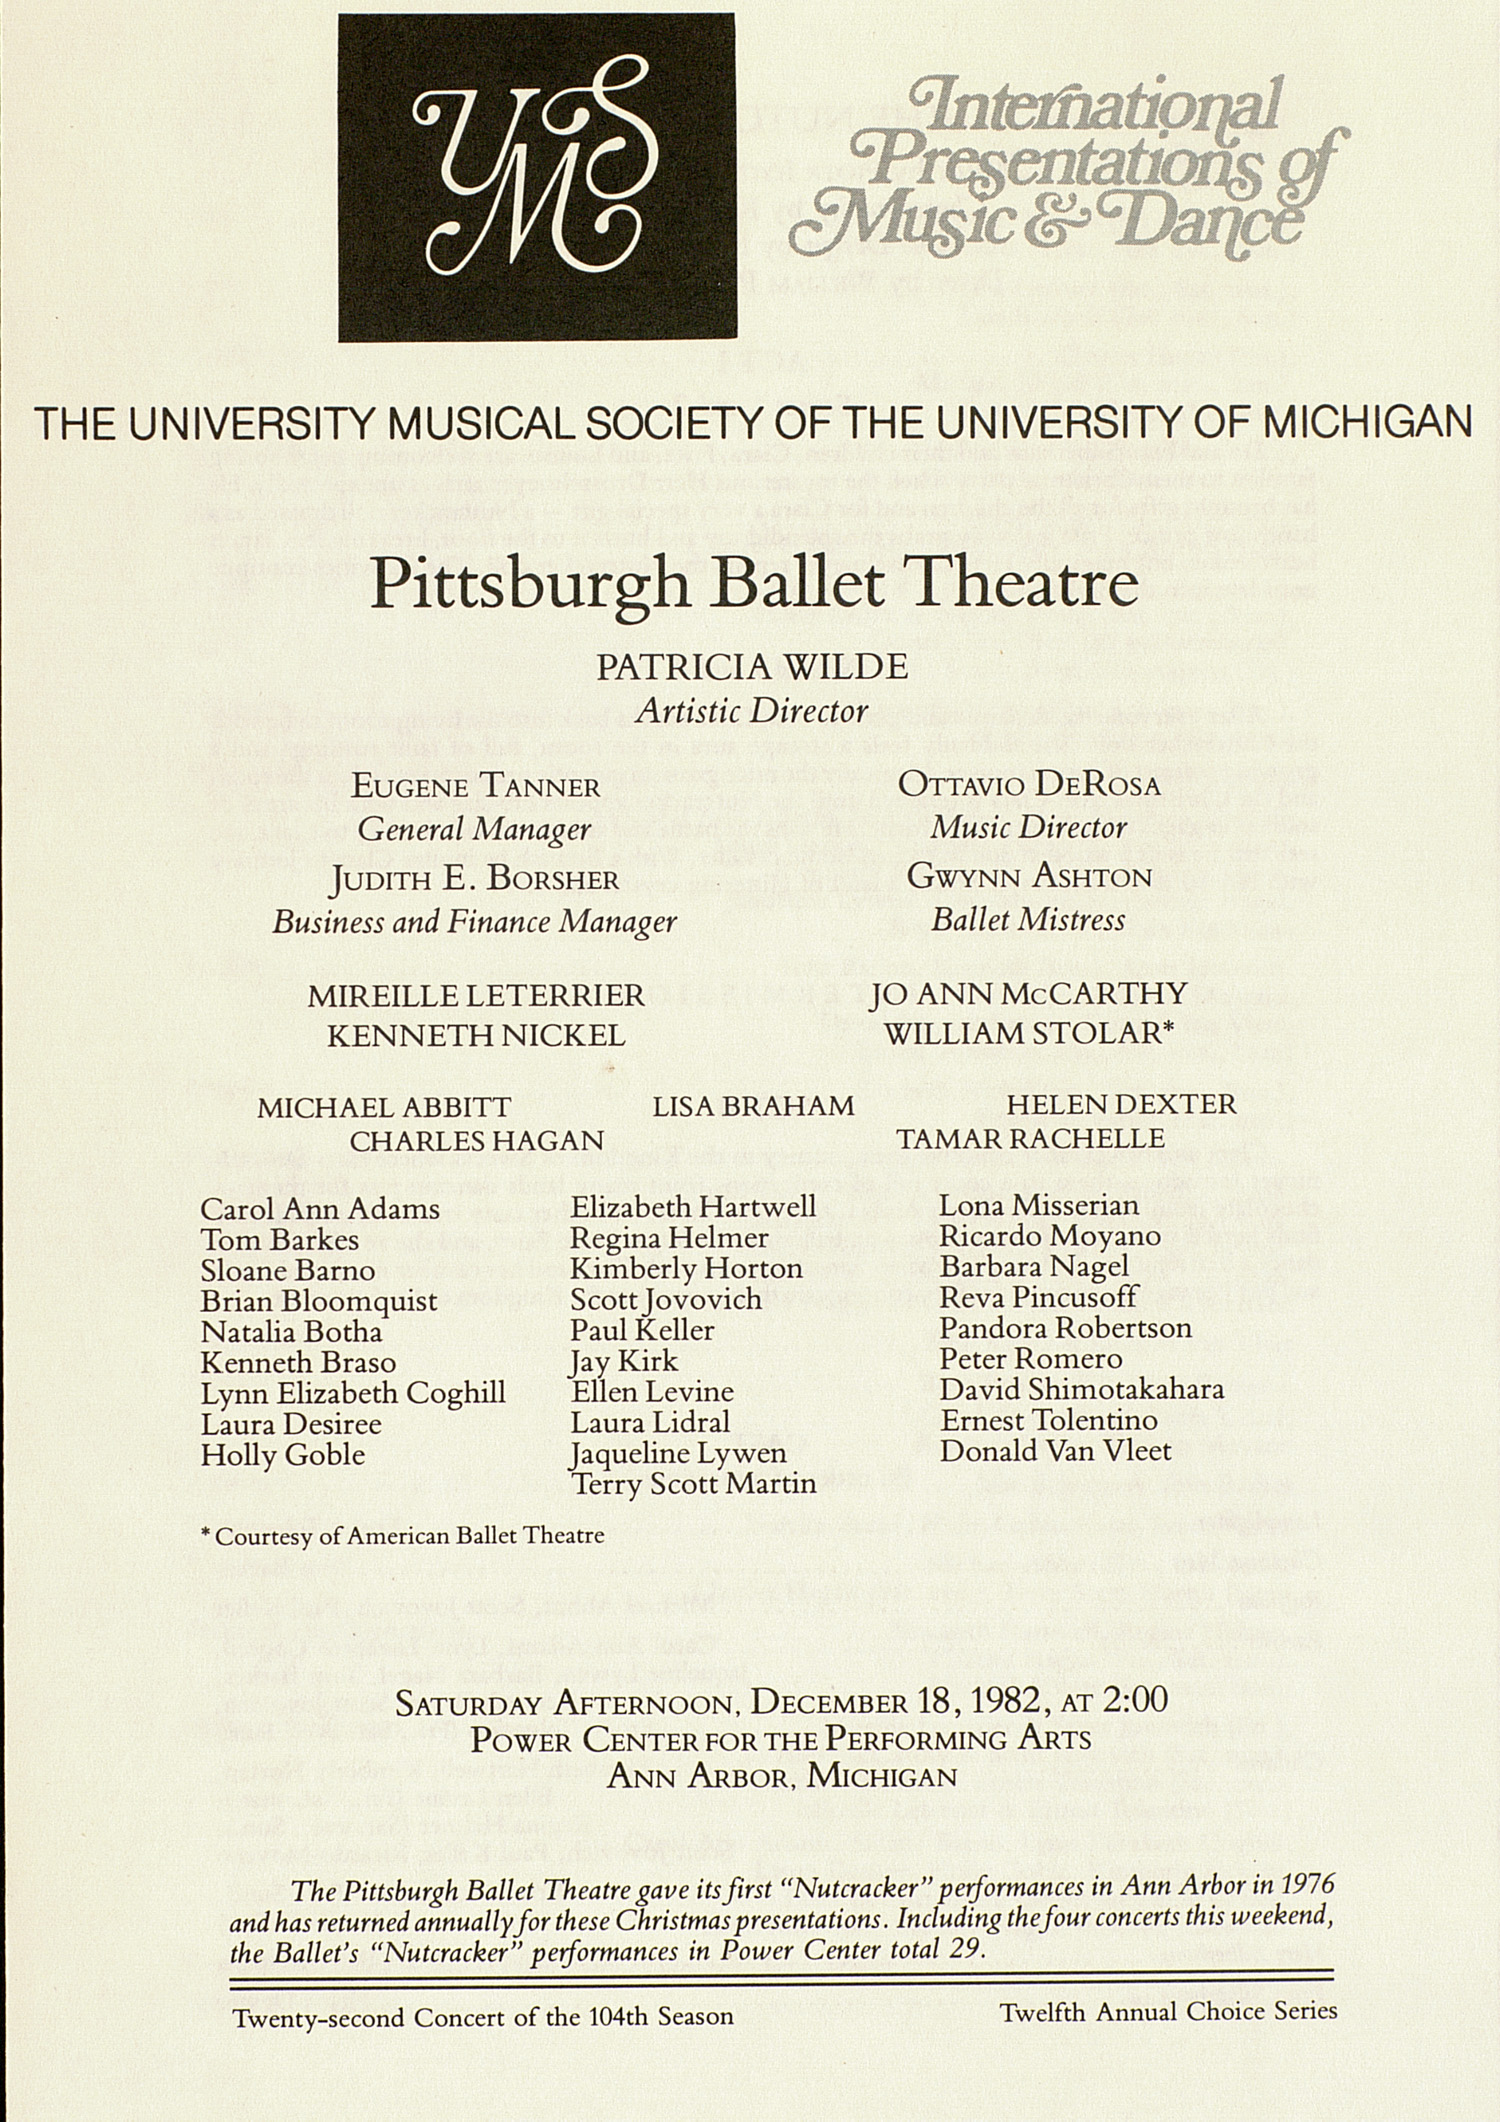 UMS Concert Program, December 18,1982: International Presentations Of Music & Dance -- Pittsburgh Ballet Theatre image